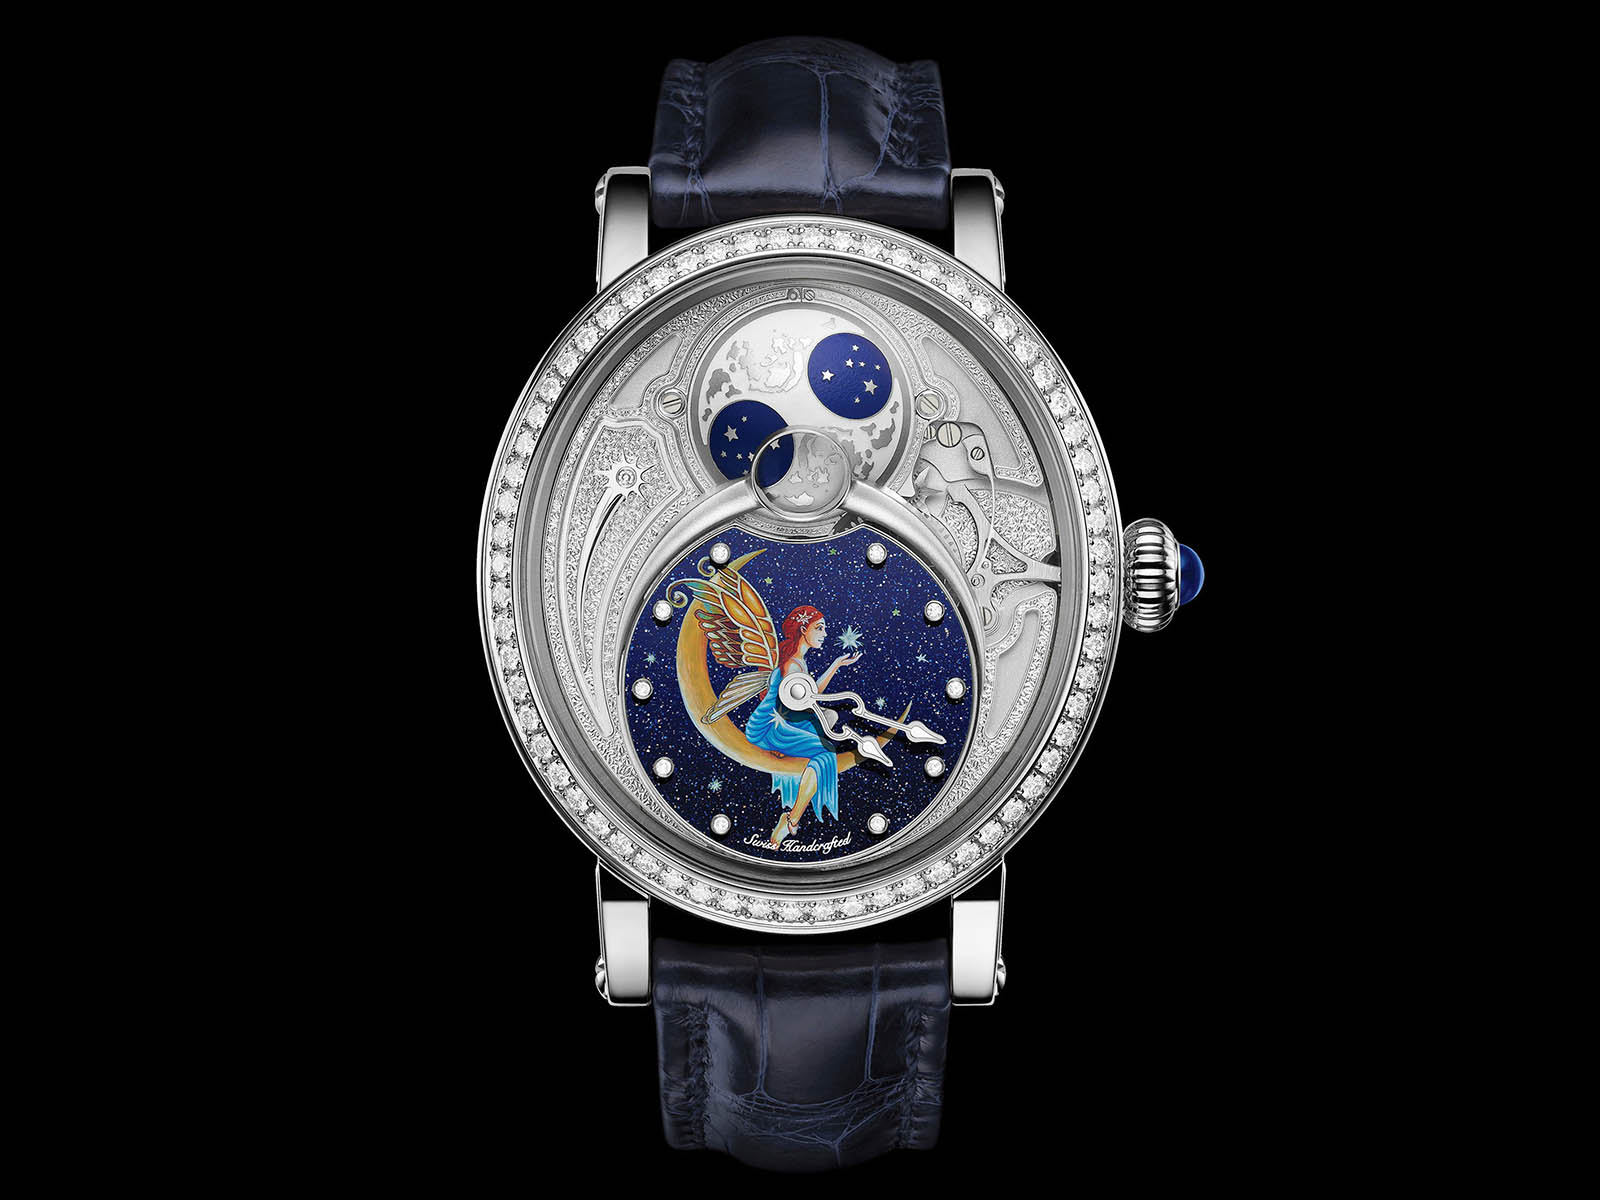 bovet-1822-recital-23-hope.jpg